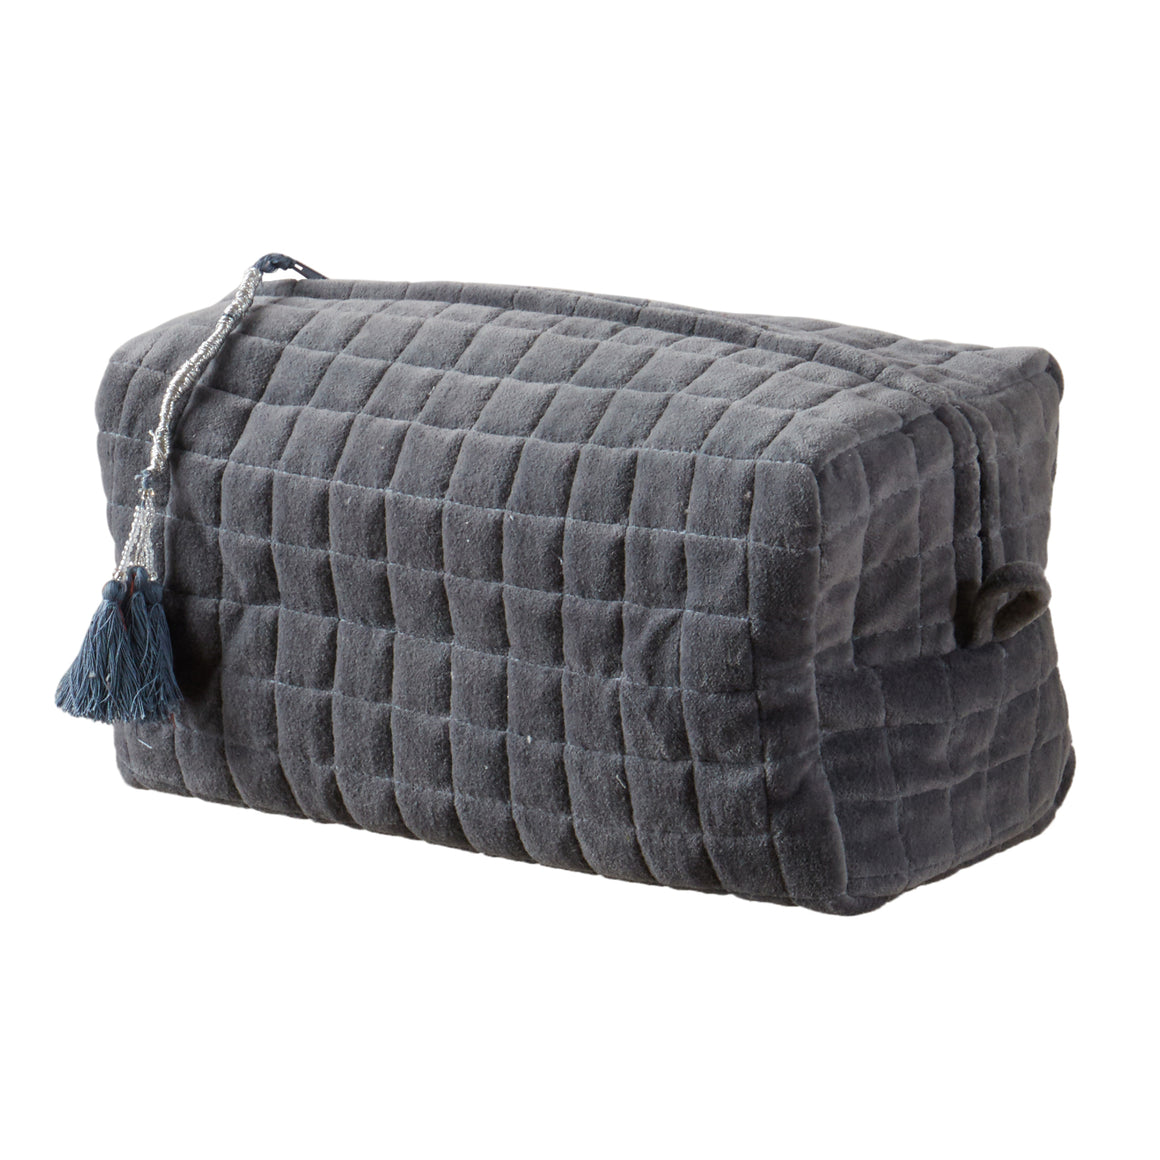 QUILTED VELVET COSMETIC BAG BLUE GREY M - McHugh Lifestyle BOHEMIAN GLAMOUR